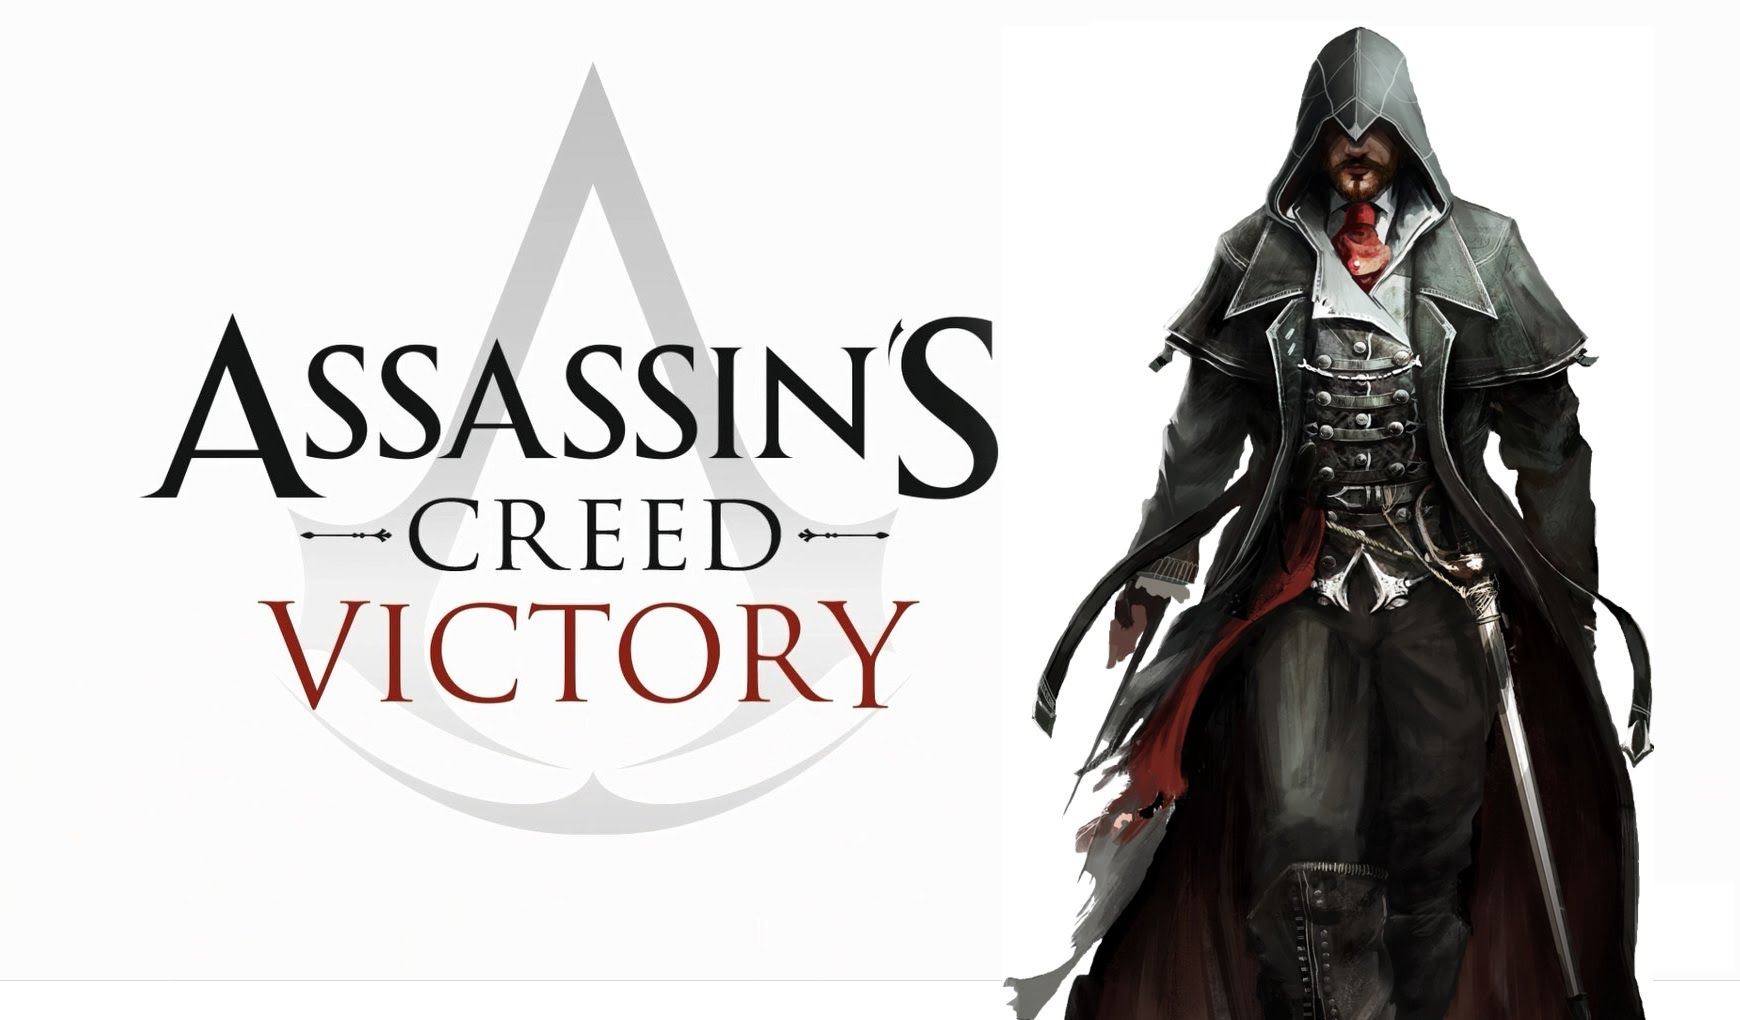 assassins creed victory Assassins Creed Victory   Top oder Flop?